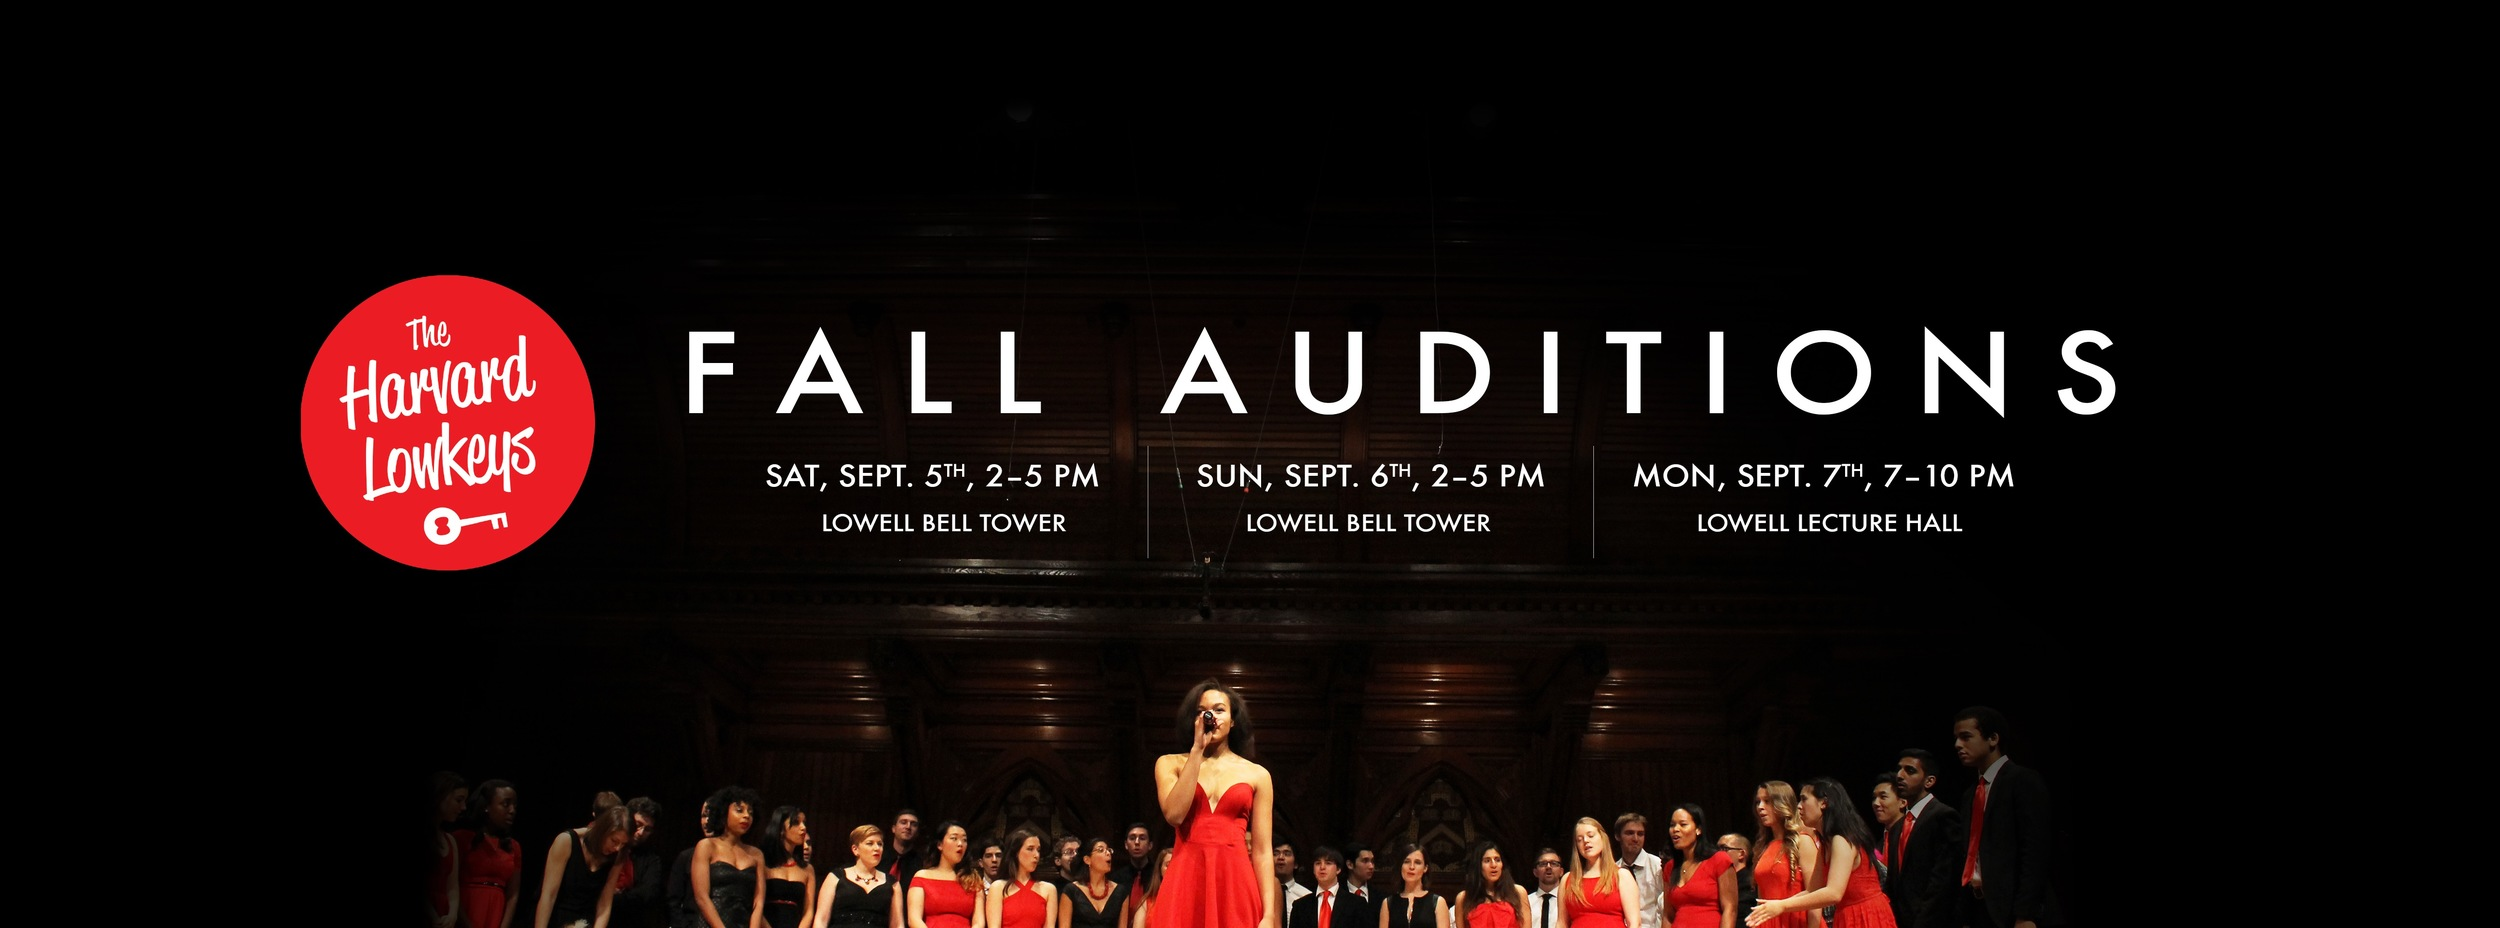 Fall Auditions - Alone.jpg